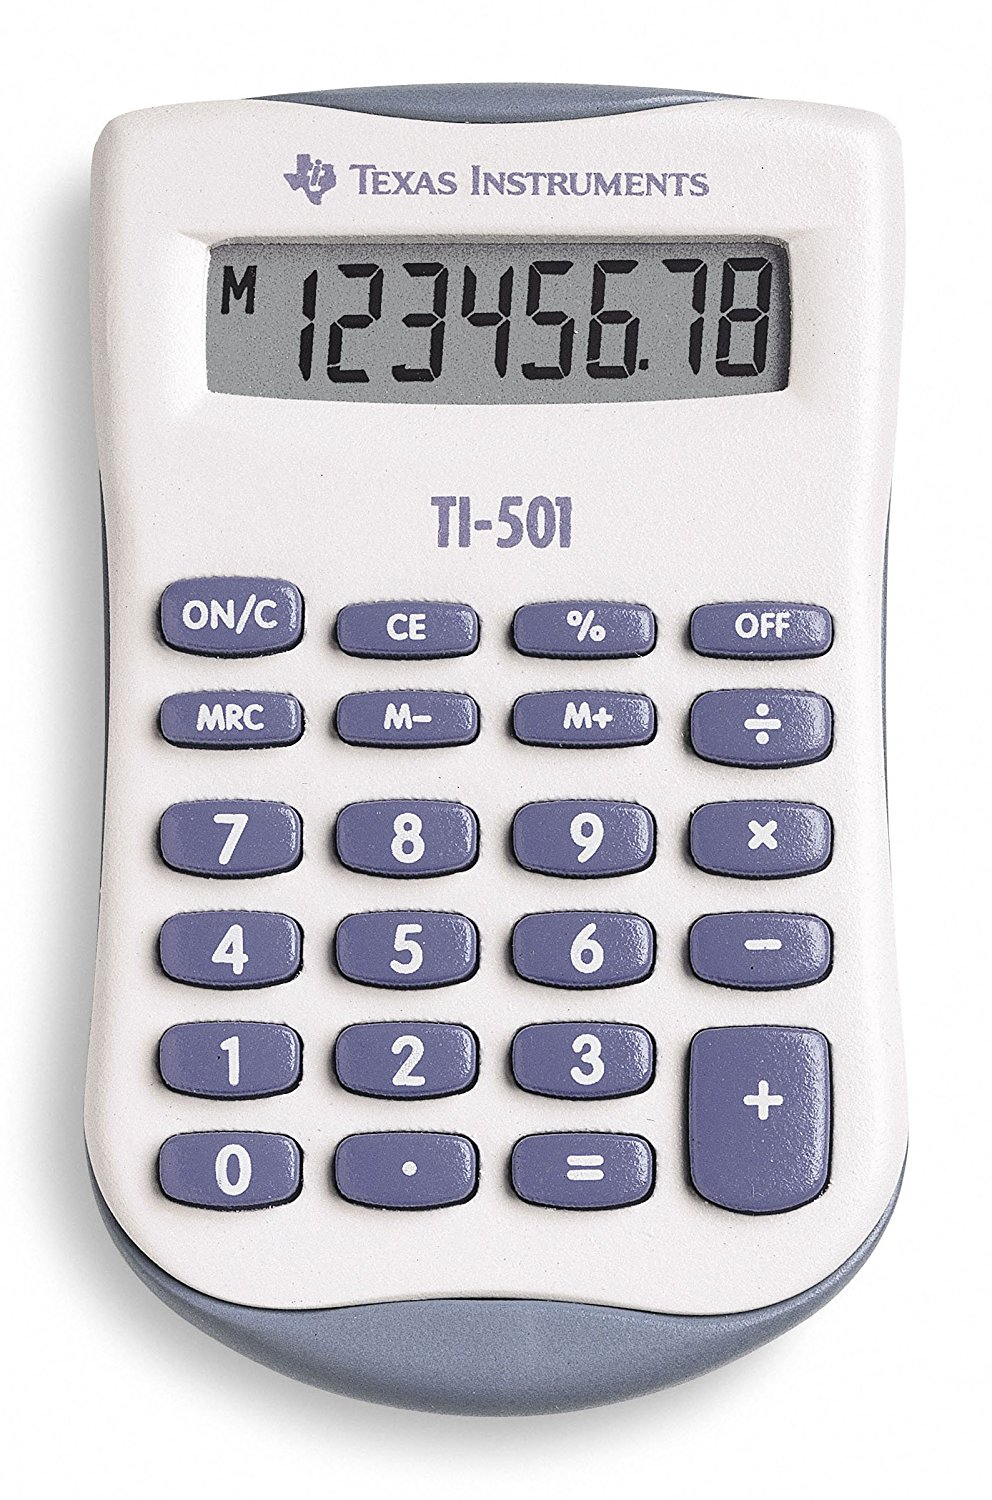 Handheld Calculator TI-501 Pocket Calculator